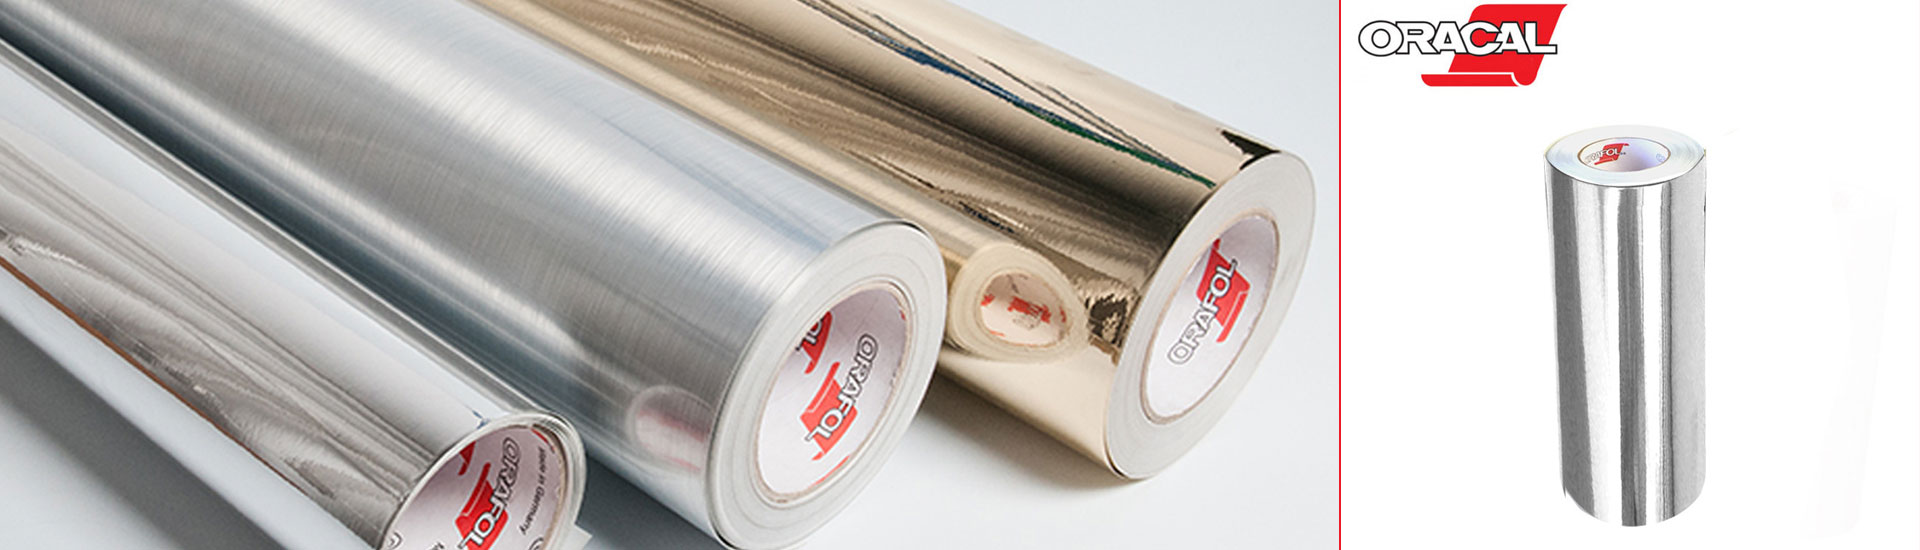 ORACAL® 351 Metallized Polyester Film